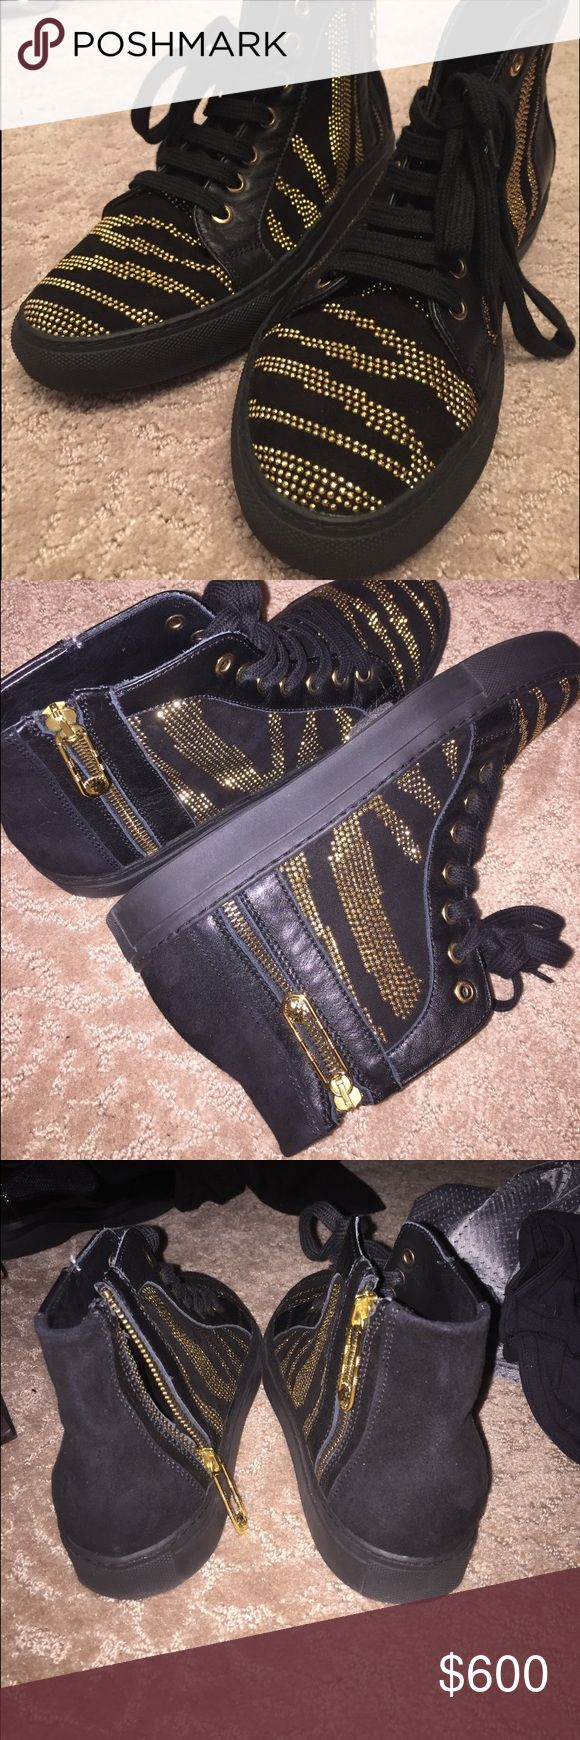 Versace gold studded sneakers 9/10 condition. Only worn about 3 times. Will go lower on 🅿️🅿️ Versace Shoes Athletic Shoes